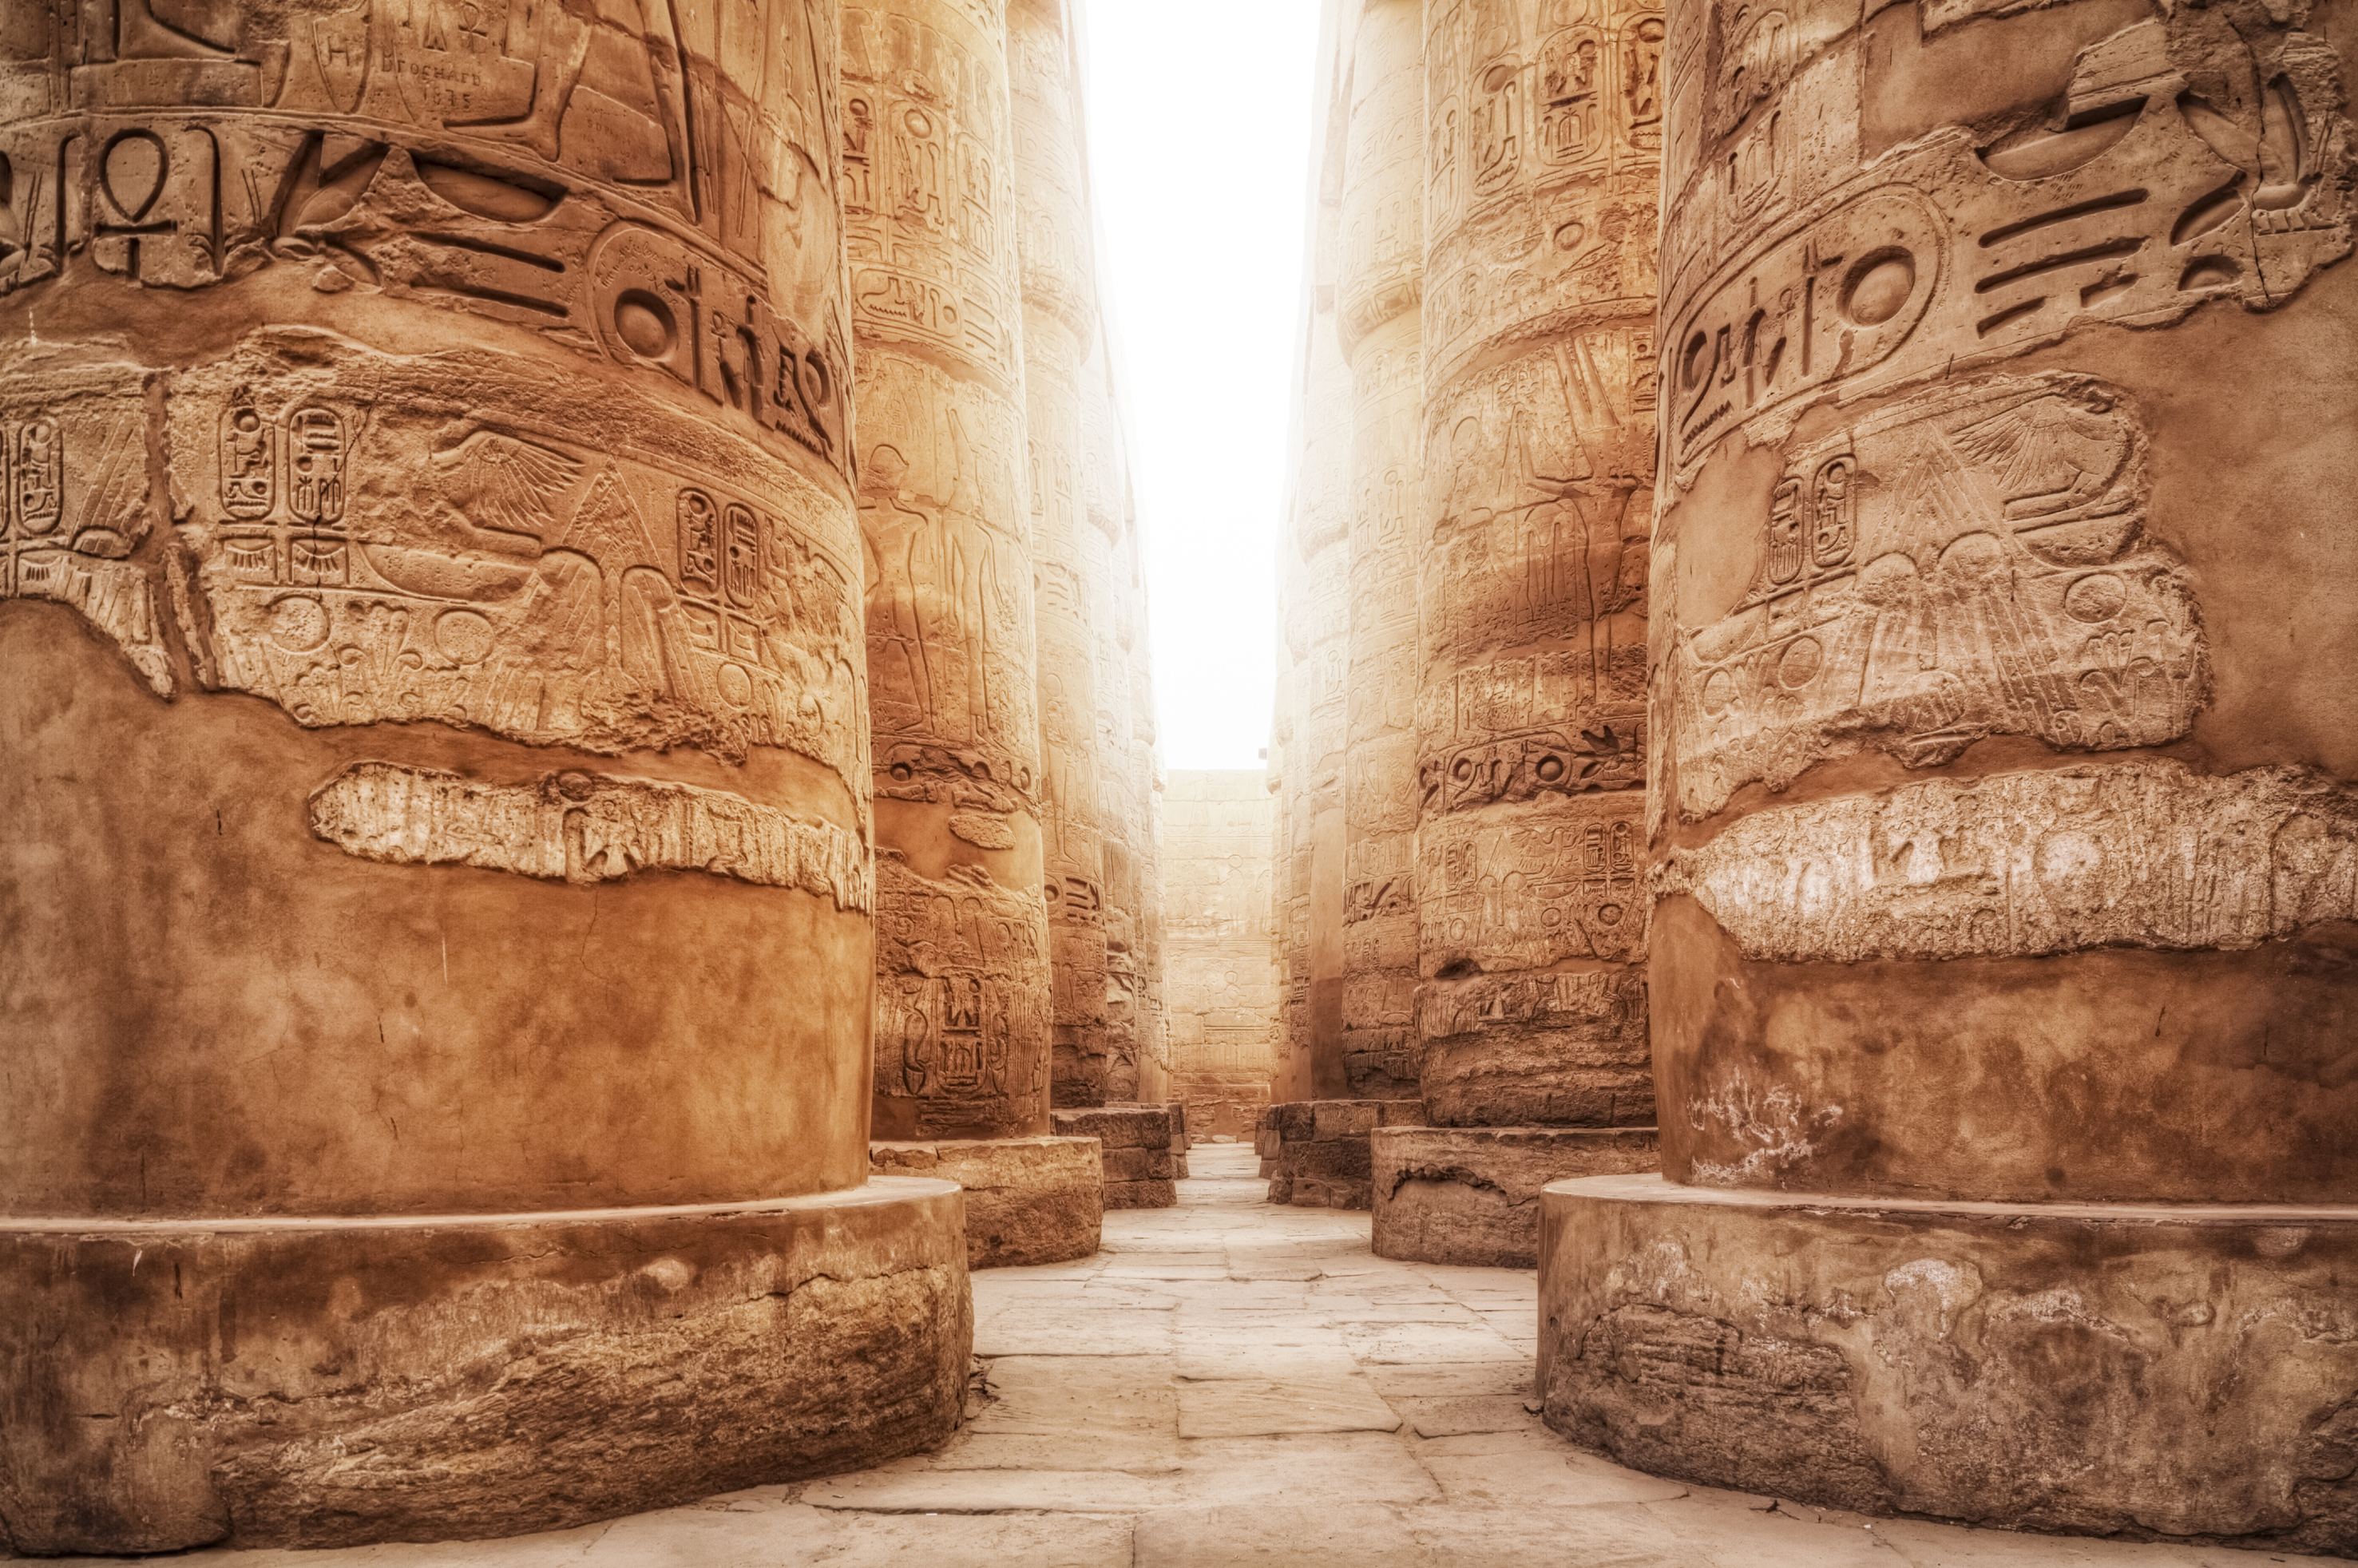 This image: Built between 1290 and 1224 BC, The Great Hypostyle Hall of Karnak is one of the most visited monuments of Ancient Egypt.